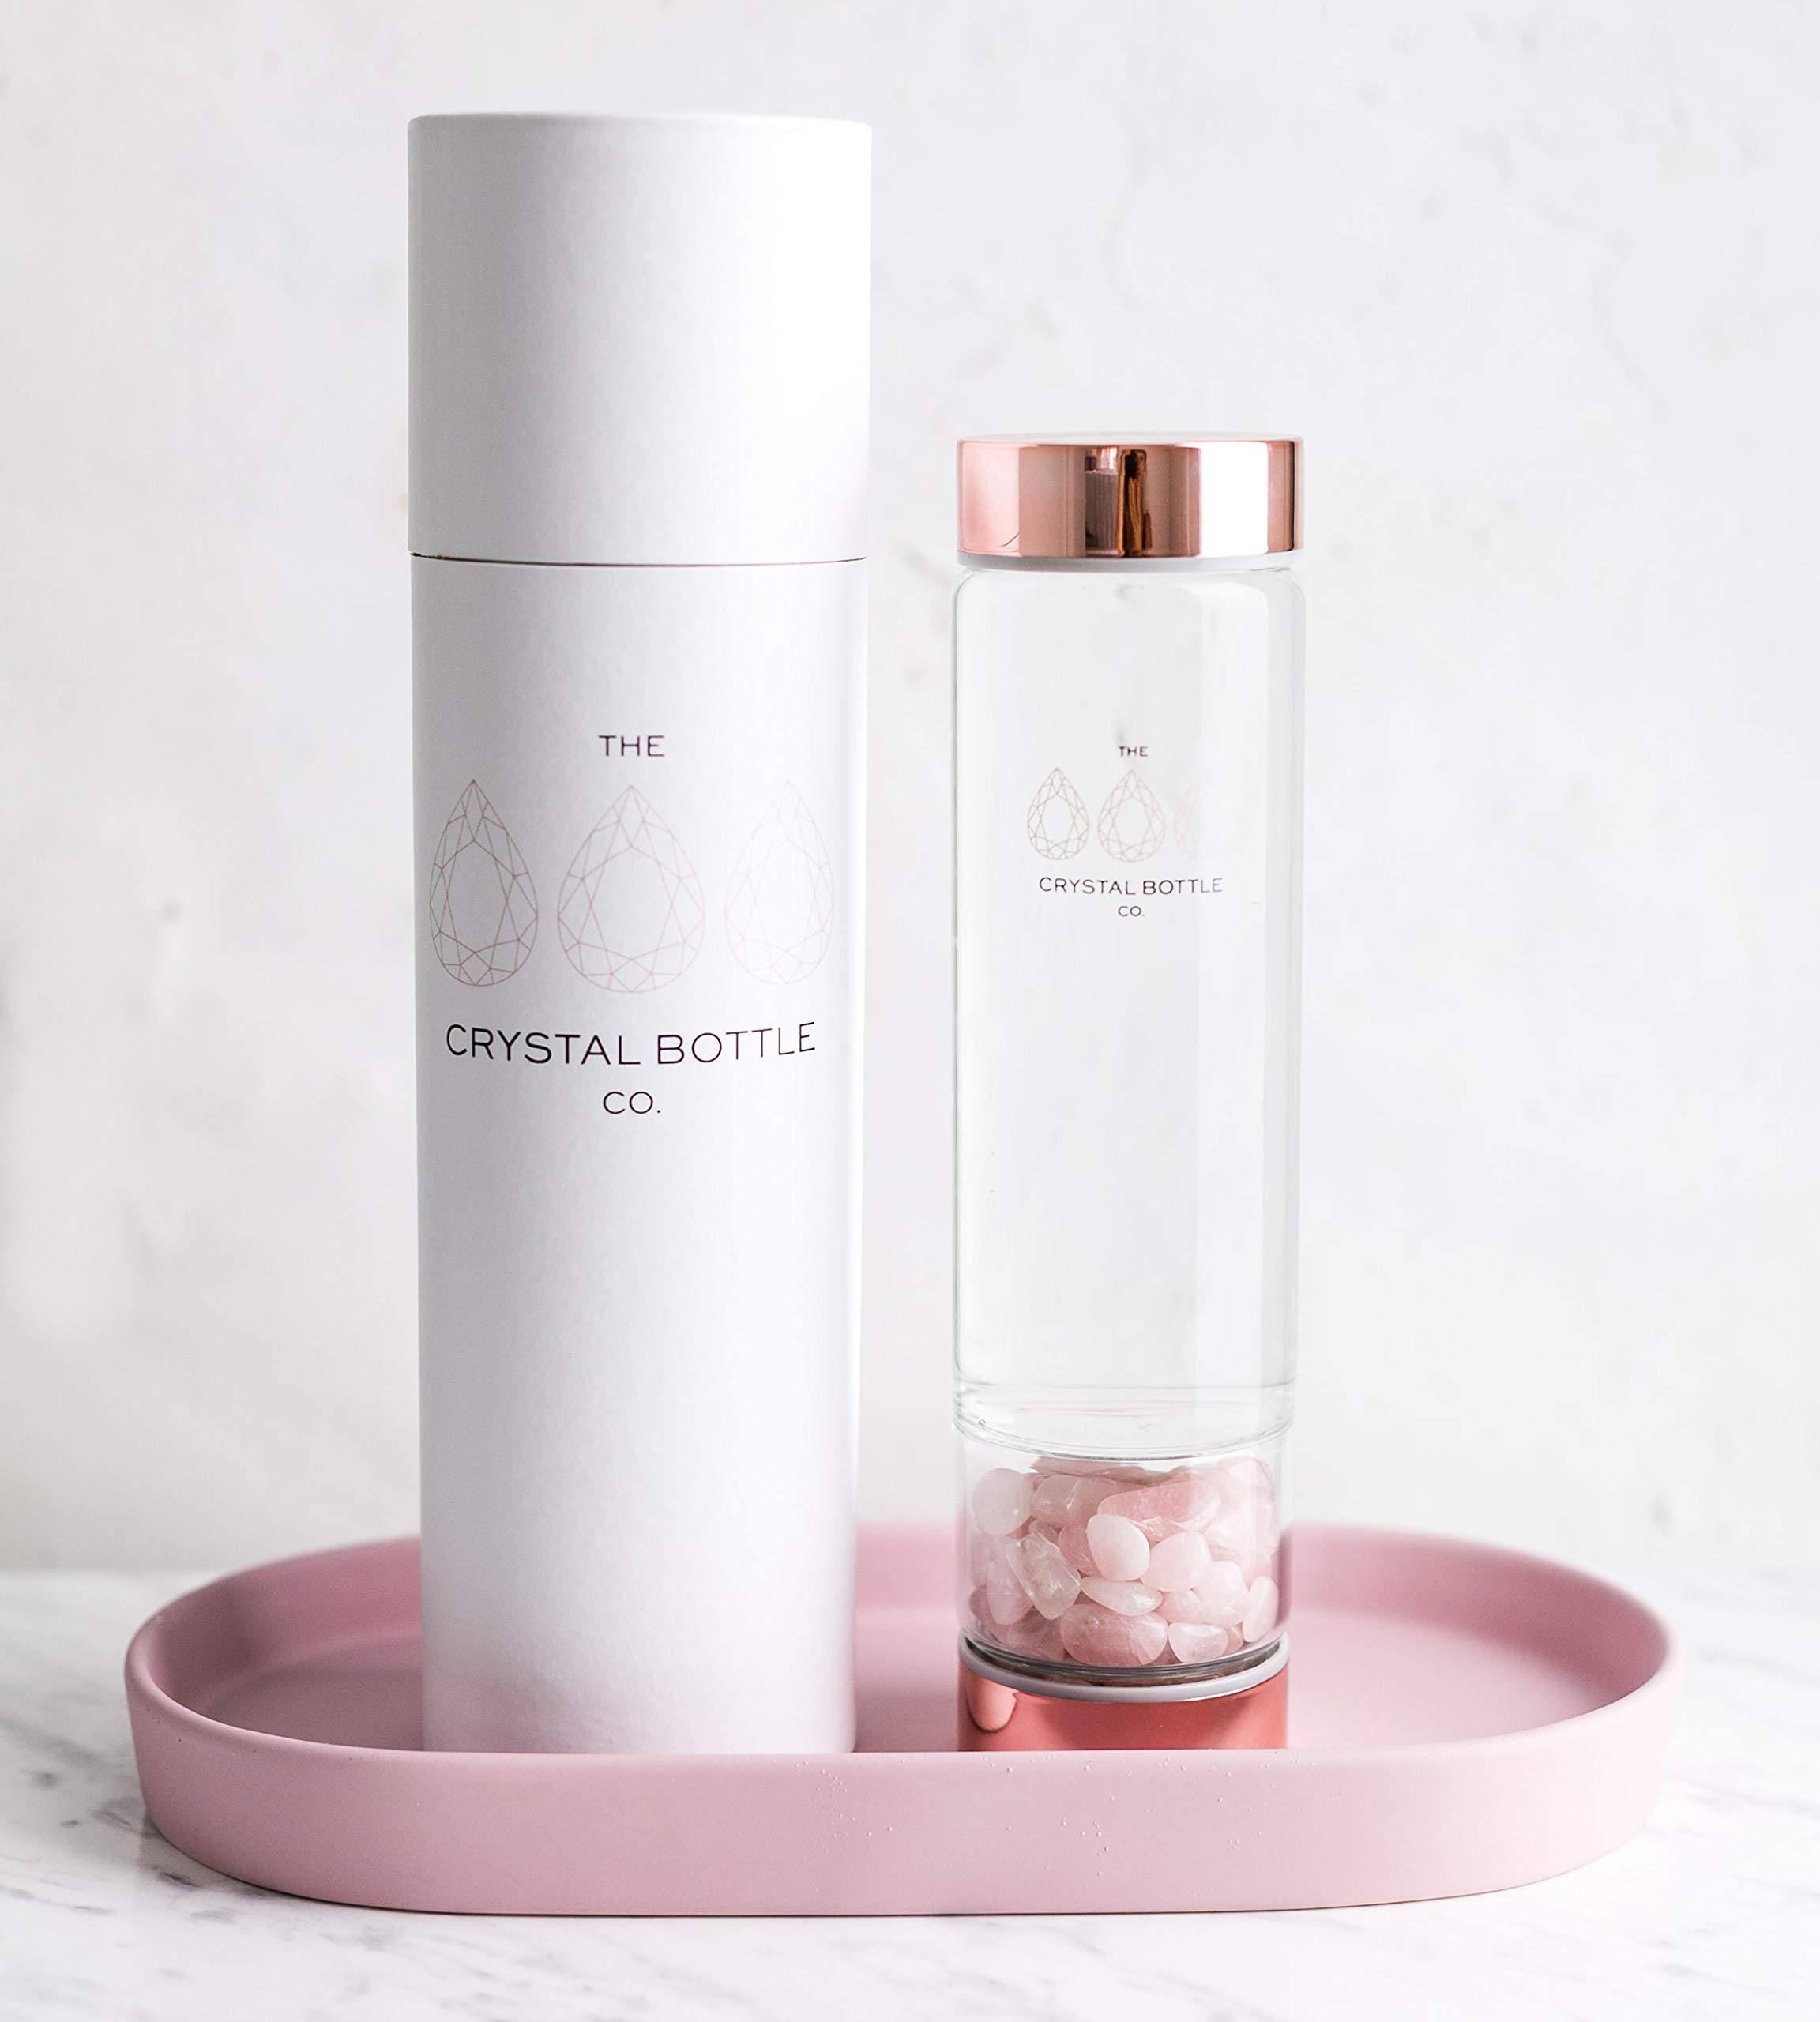 Crystal Elixir Glass Water Bottle - Gemstone Wellness Dispenser with Rose Quartz Crystal Included to Infuse Water for Healing with Rose Gold lids a Great Gift idea for Women and Bridesmaids BPA Free